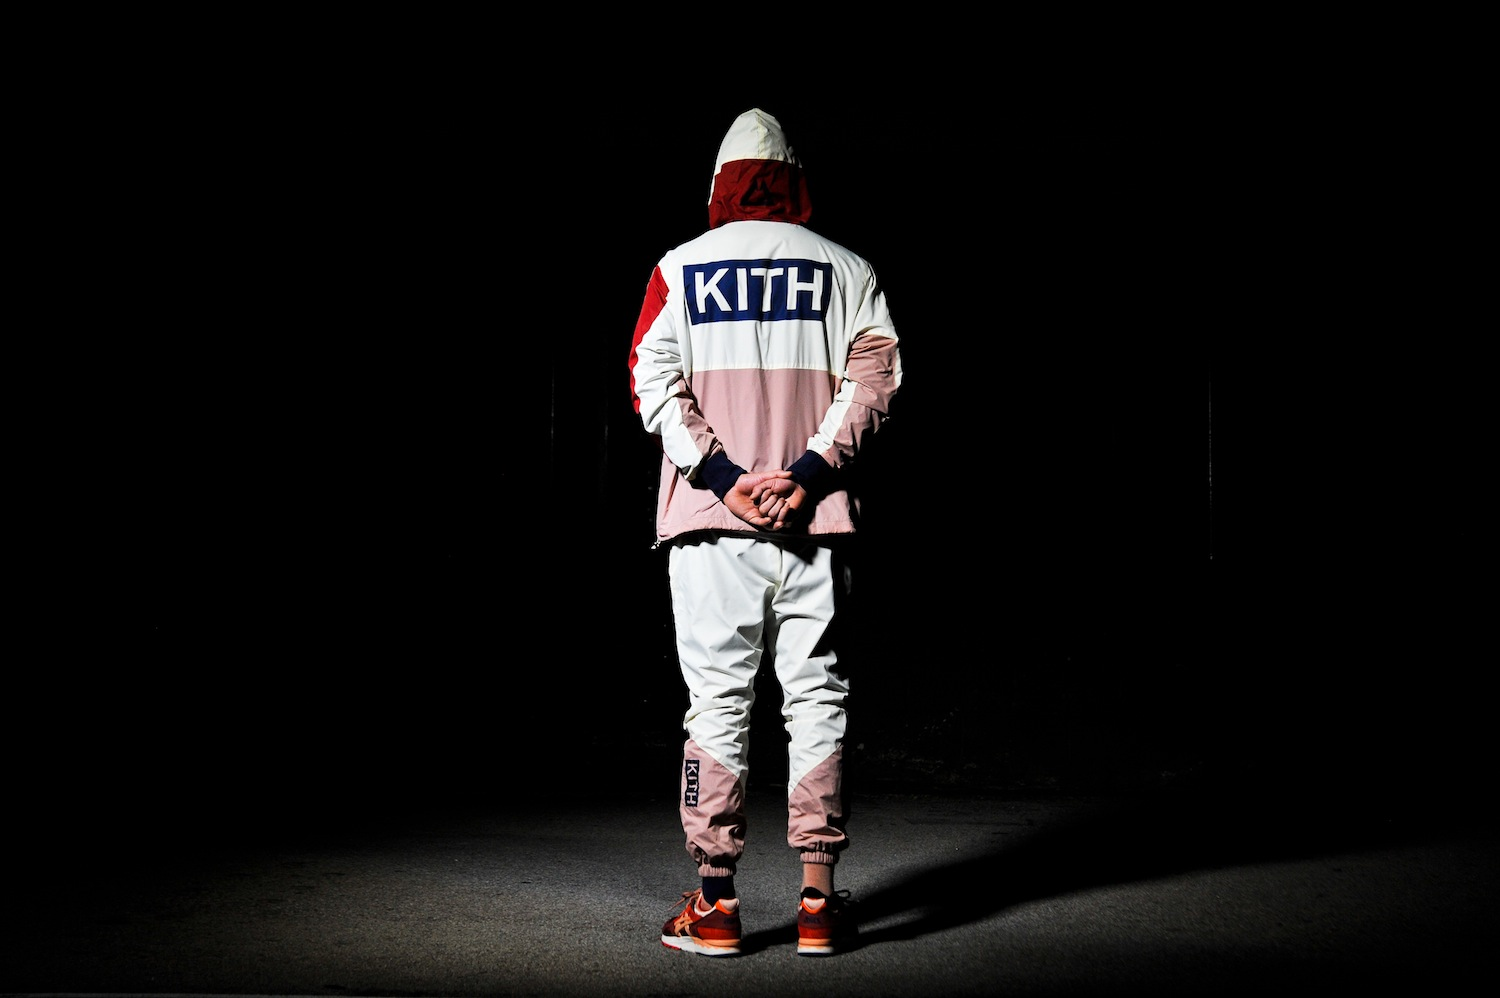 Kith Volcano Capsule Collection back